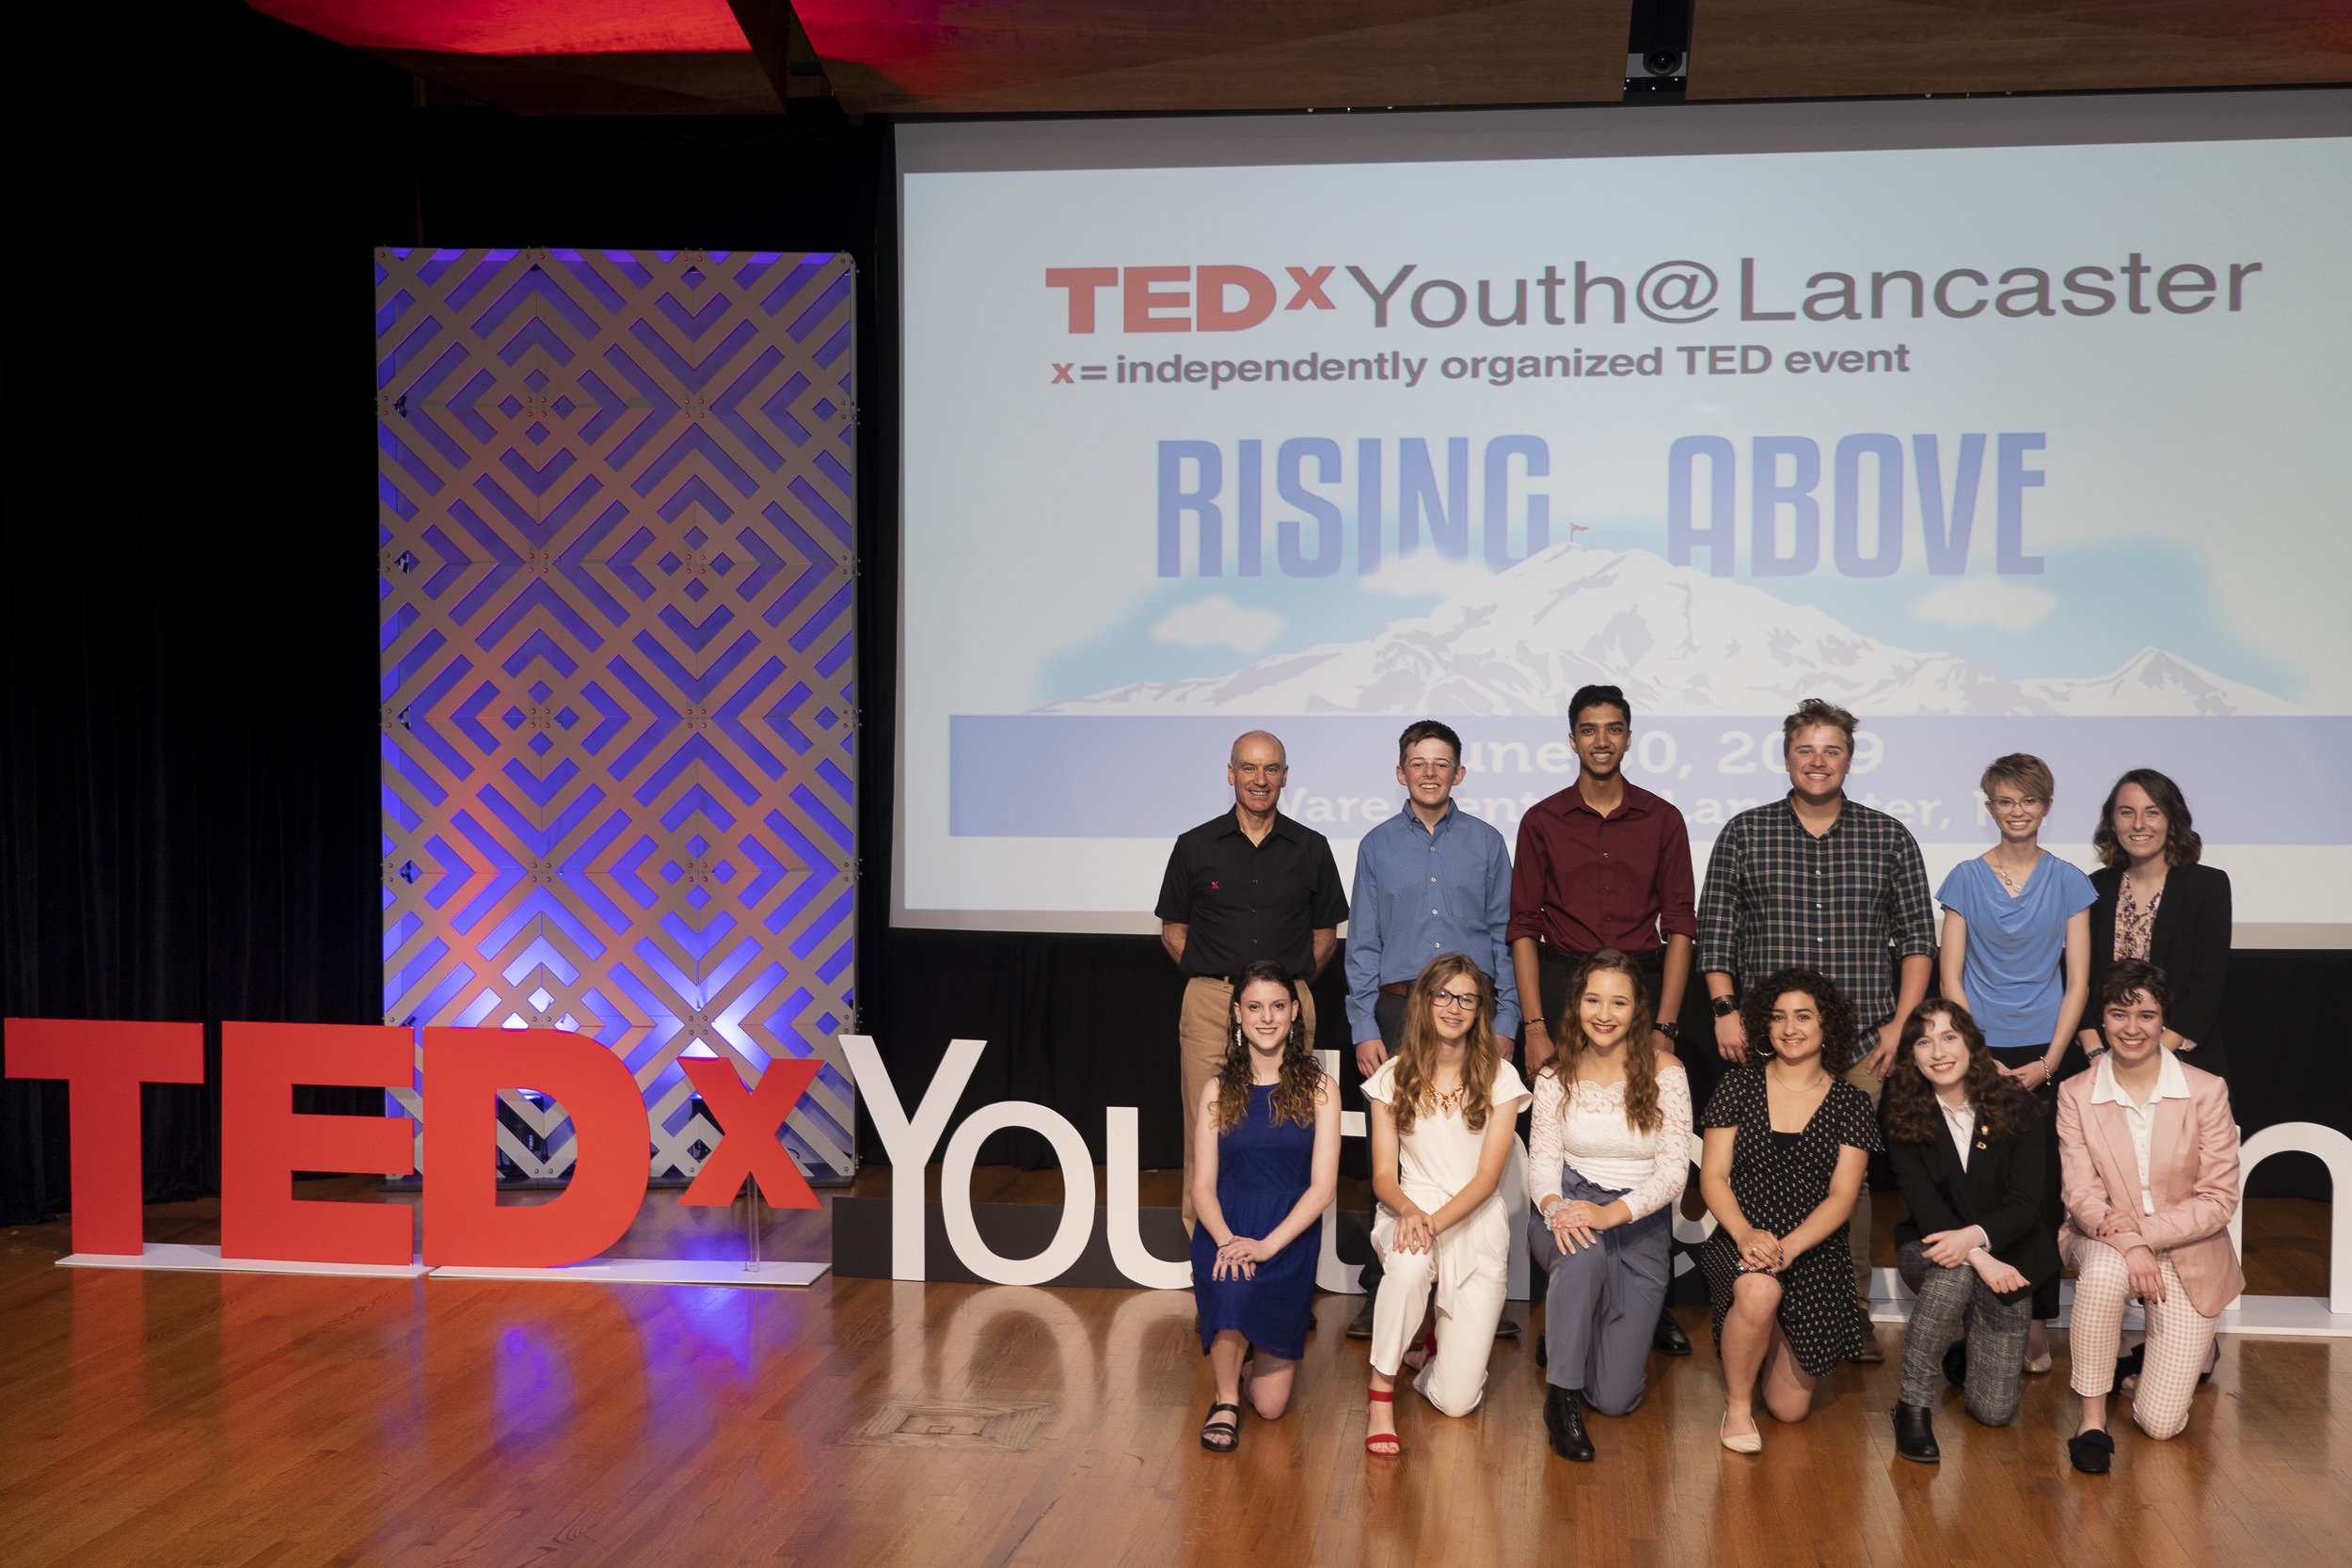 speakers-emcee-and-tedxlancaster-executive-director_48522632211_o.jpg